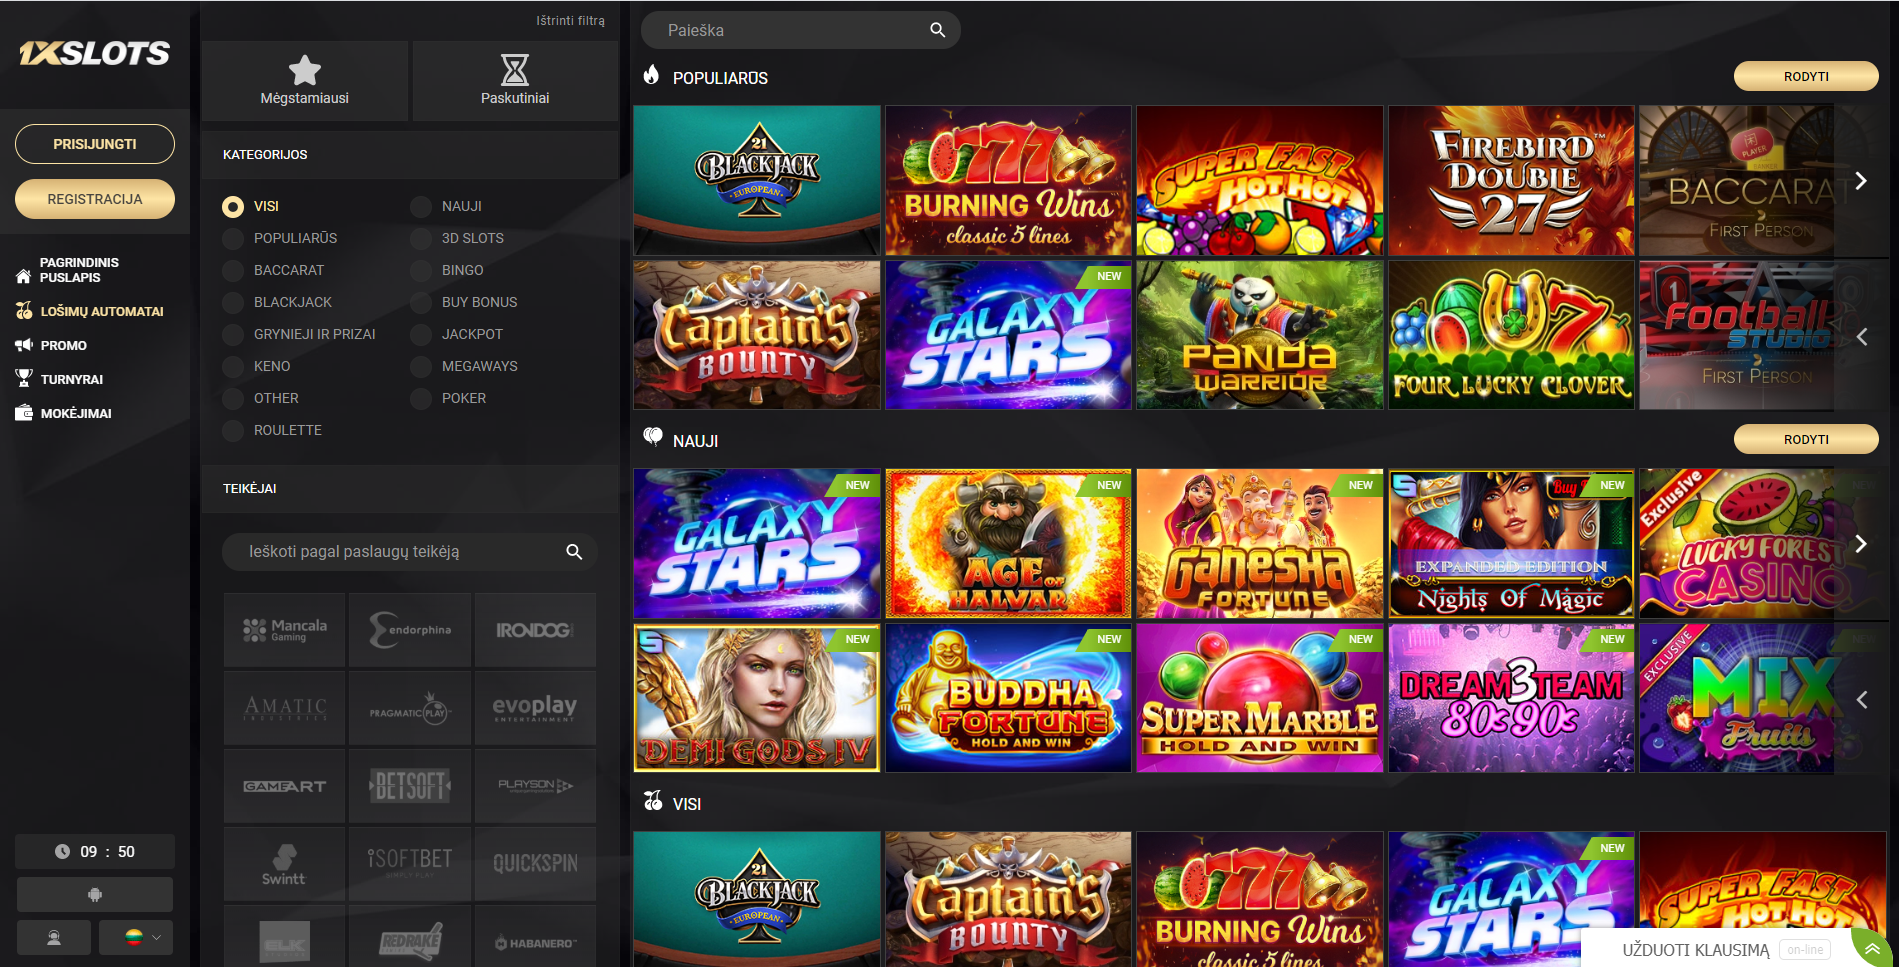 1xslots kazino žaidimai blackjack galaxy stars panda warrior 777 burning wins baccarat demi gods